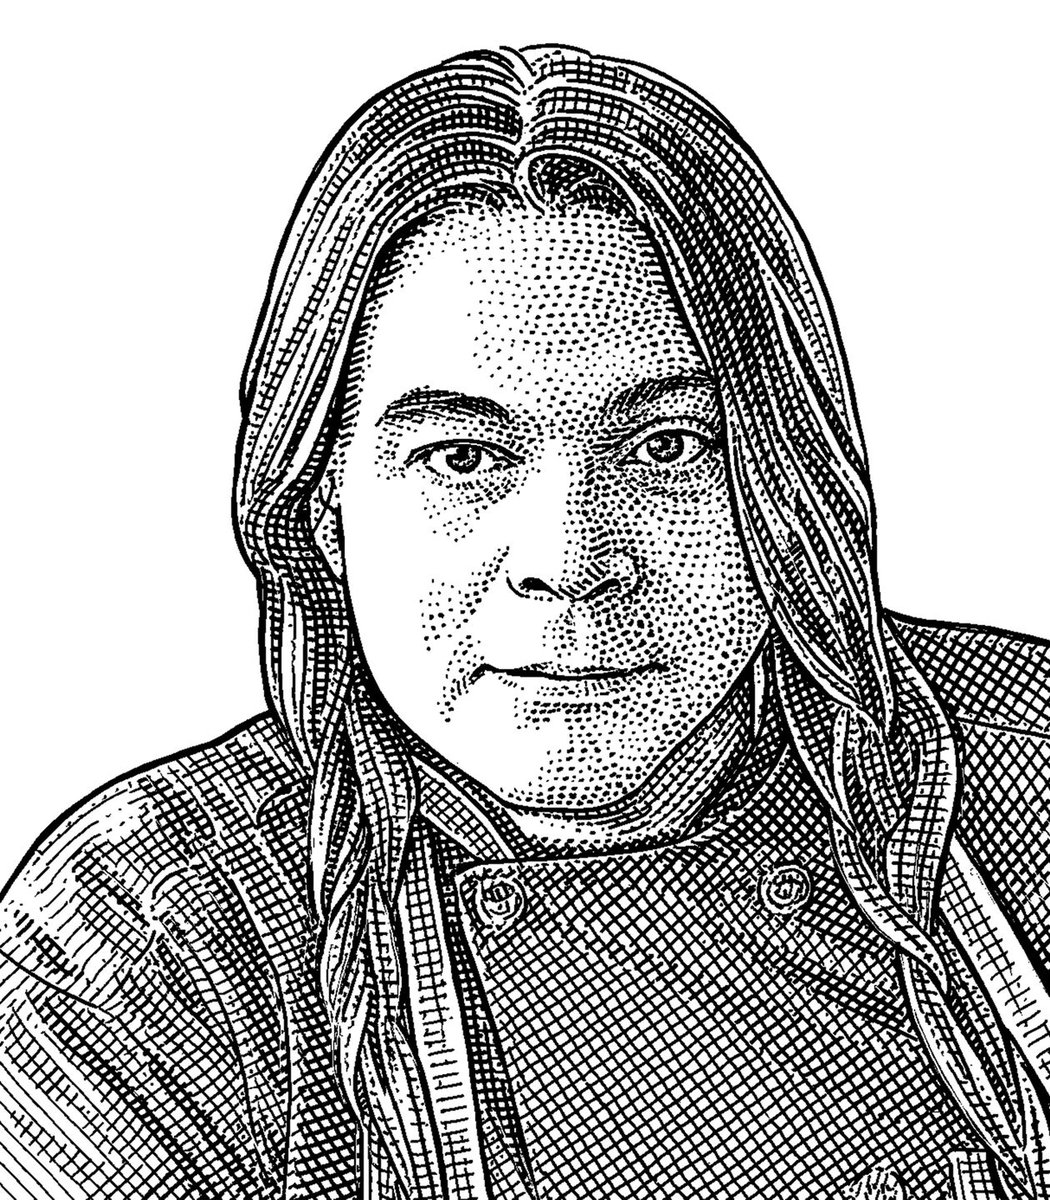 Food is a great way for other people to understand the culture because food is a cultural identity, especially because of how invisible indigenous voices have been historically, says @Chef_Sean. on.wsj.com/34GgQgr